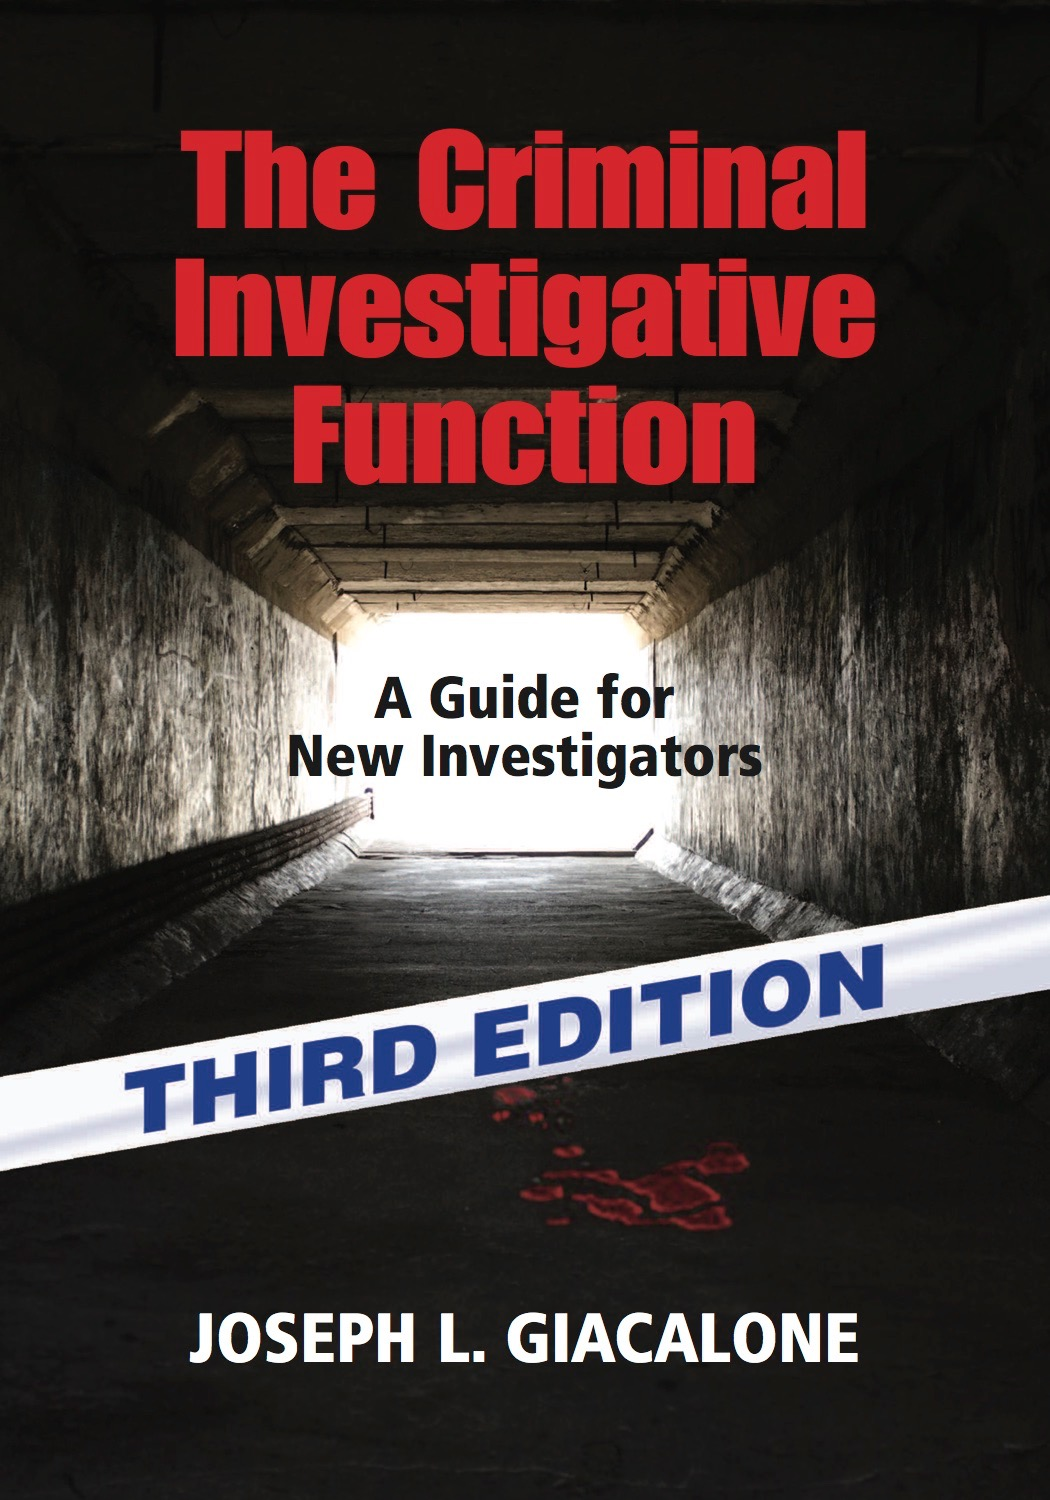 A Bestseller for Investigators, Reporters and Mystery Writers now in it's 3rd Edition!